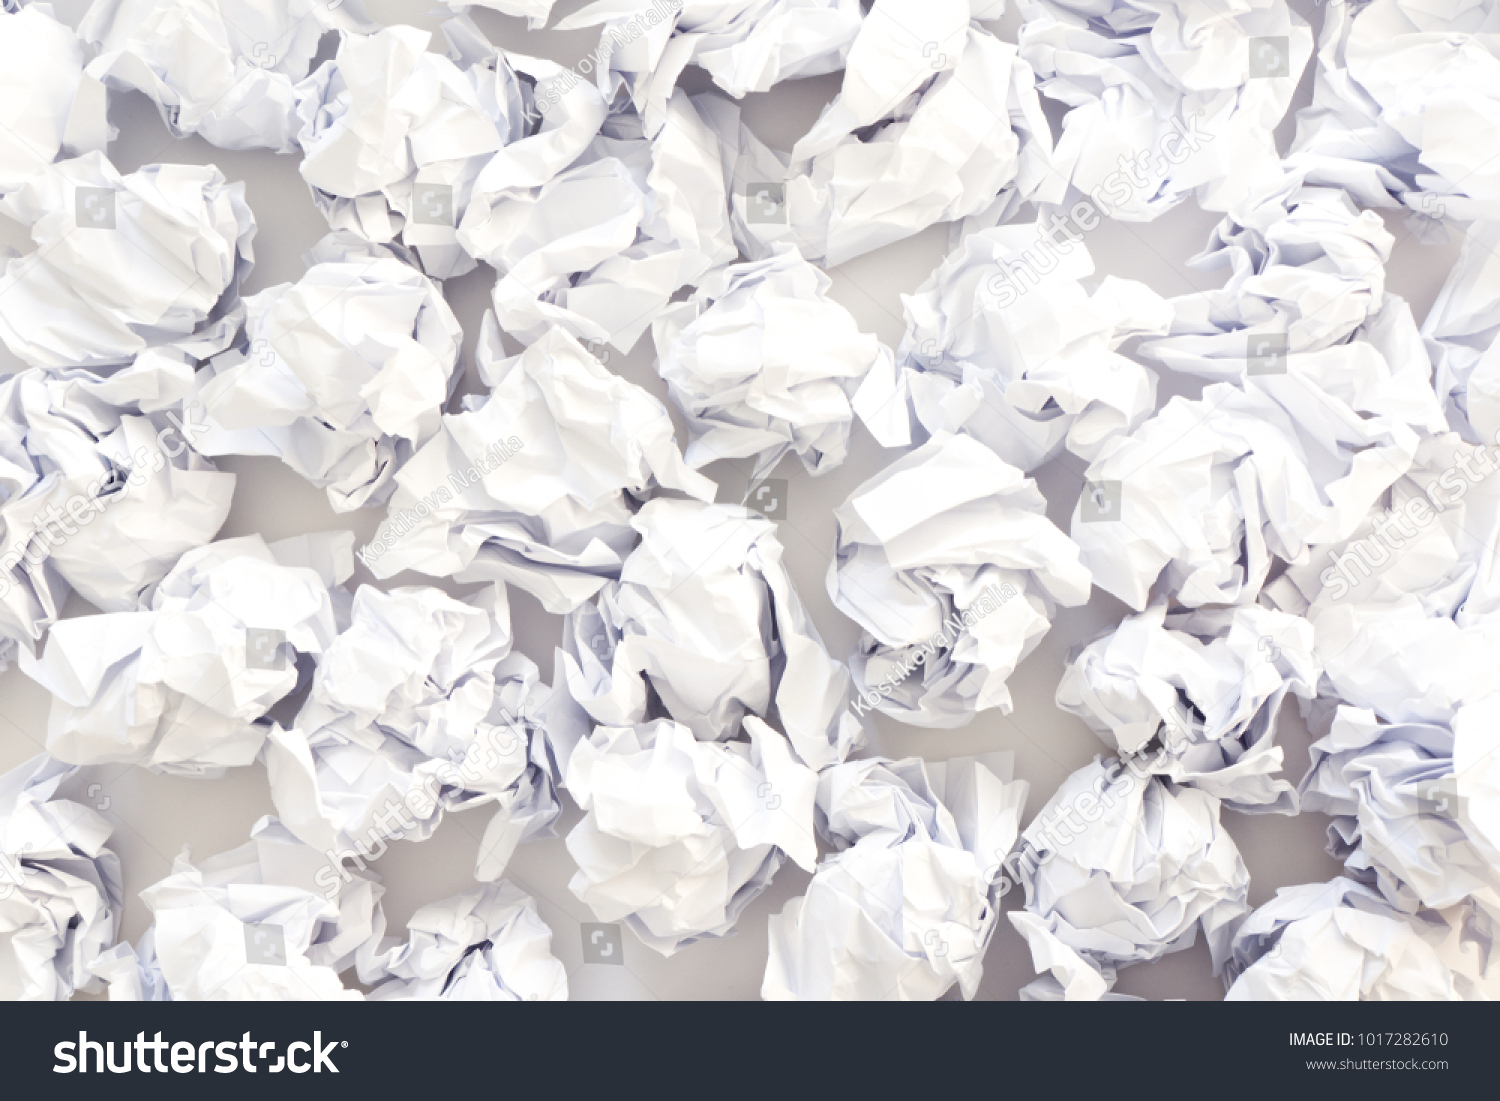 pile of crumpled paper on a white background. | ez canvas